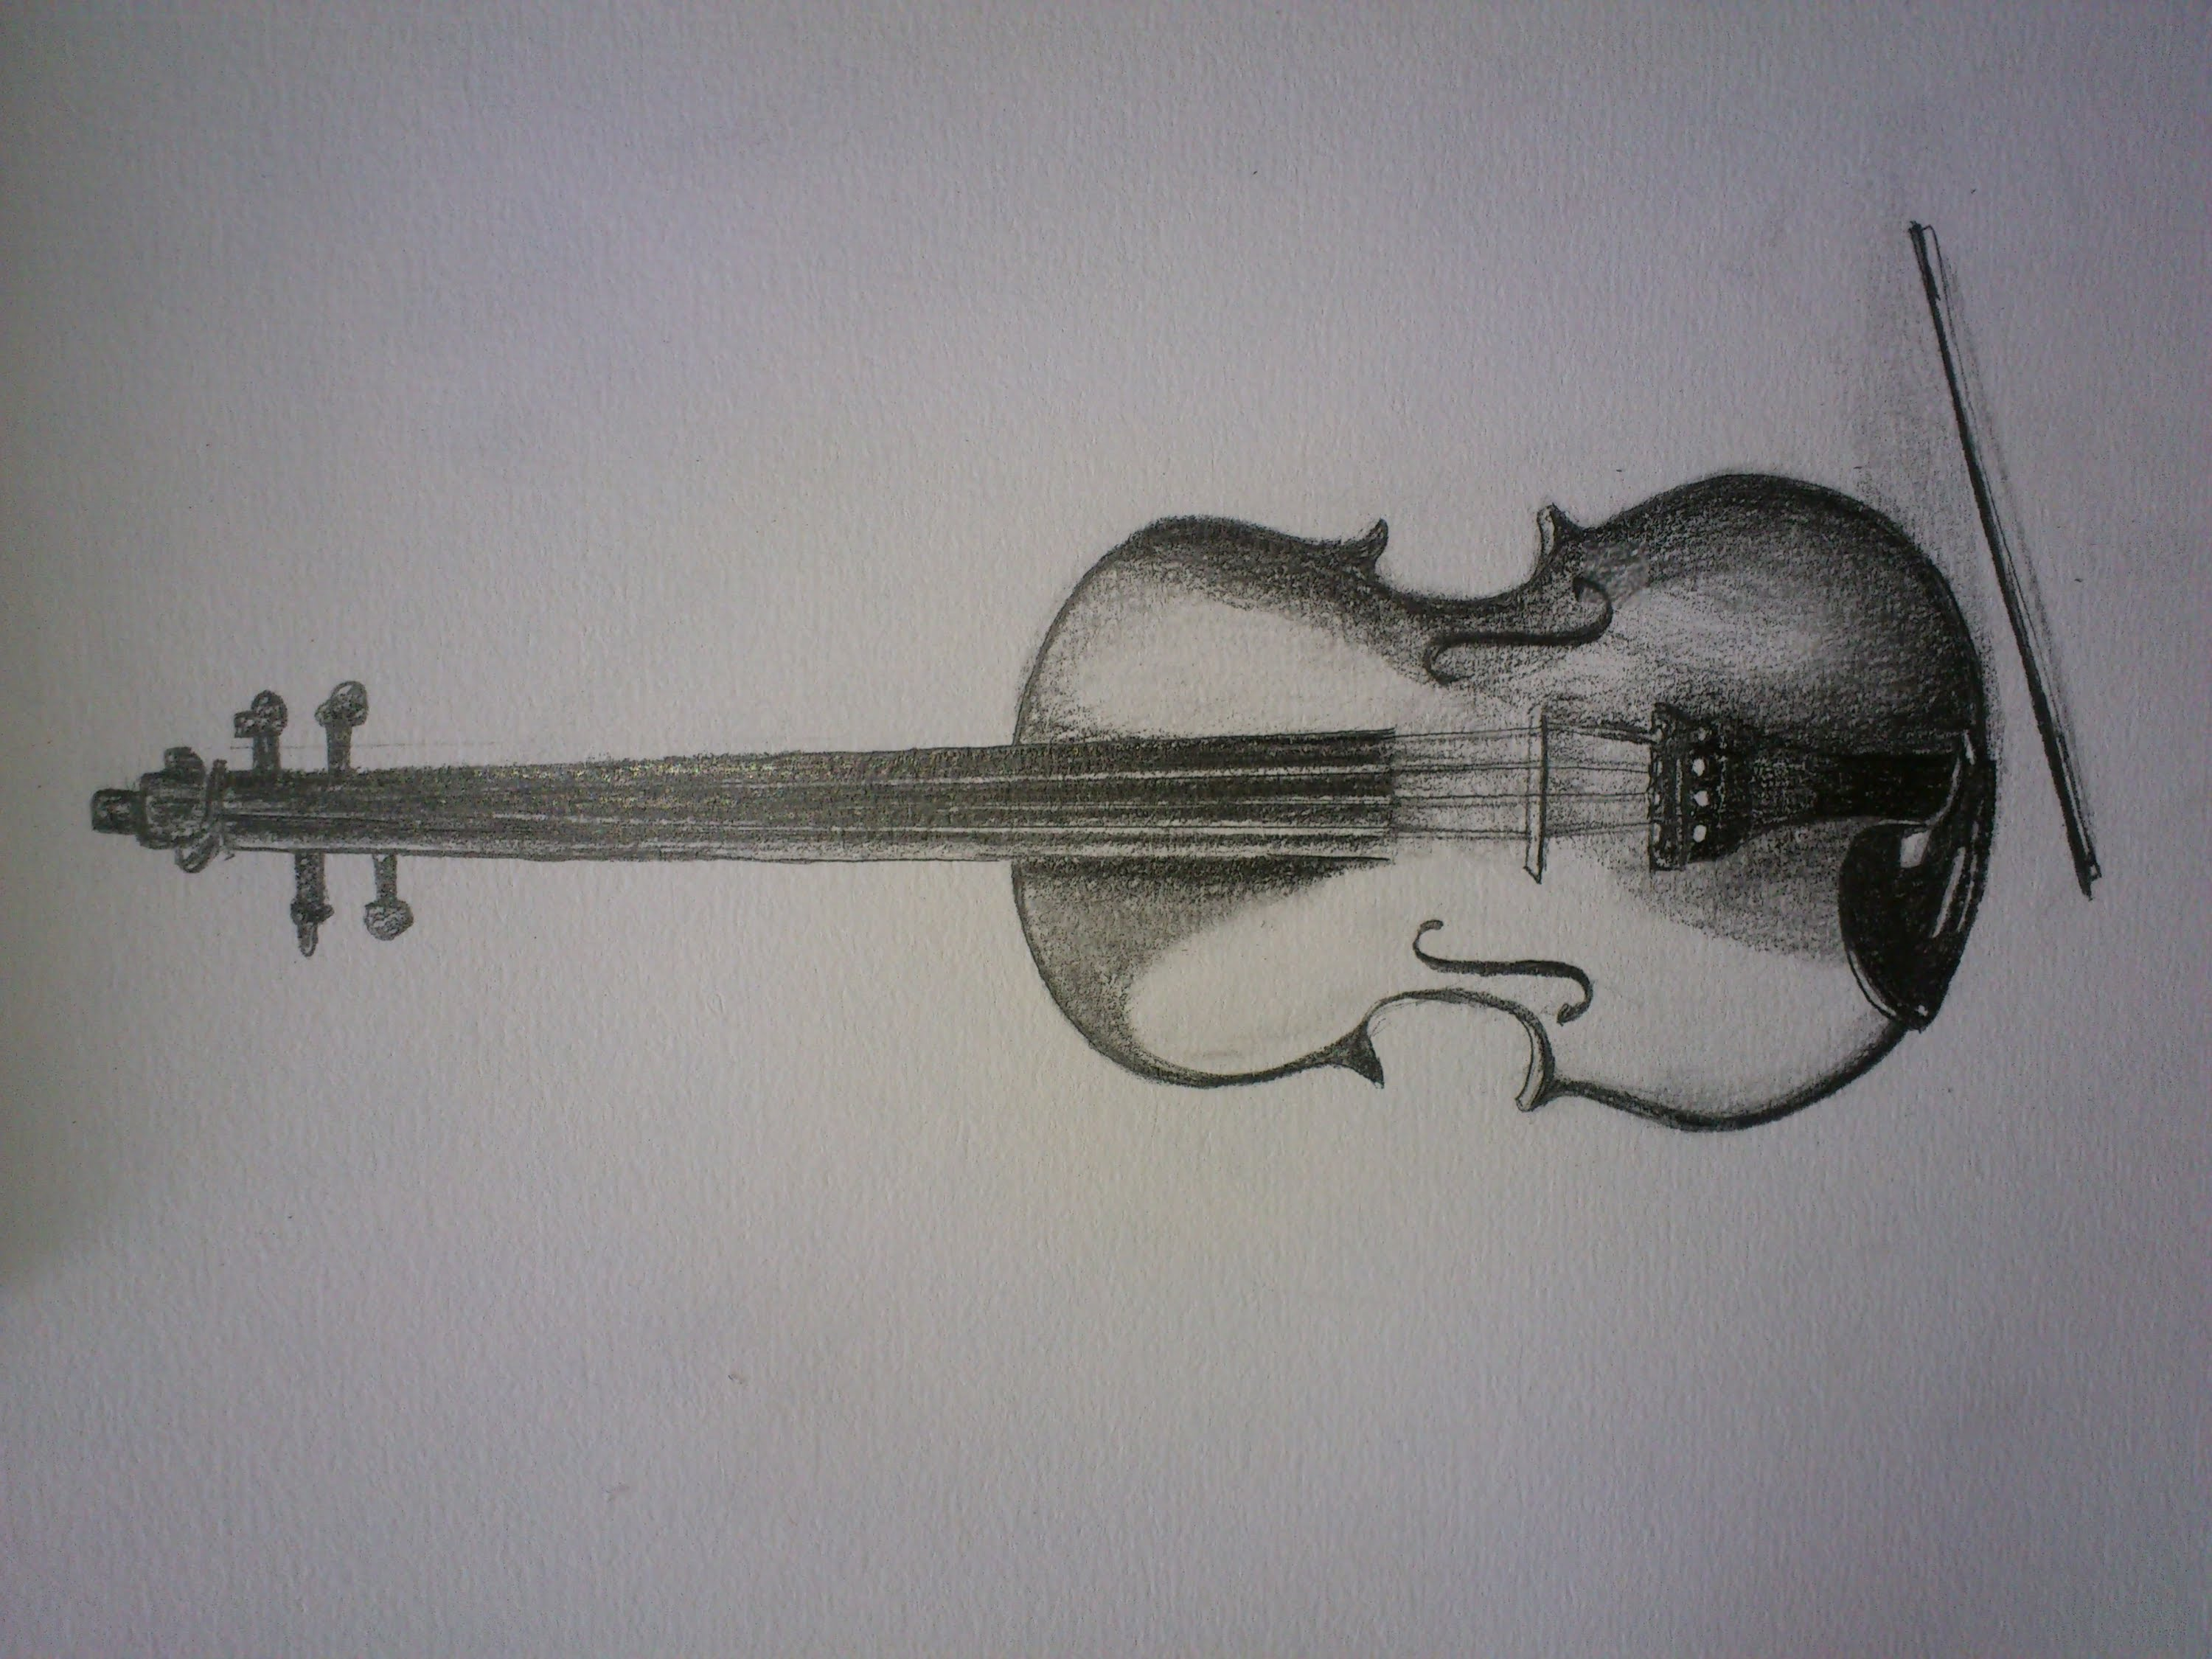 Drawn violinist realistic Draw YouTube draw to How